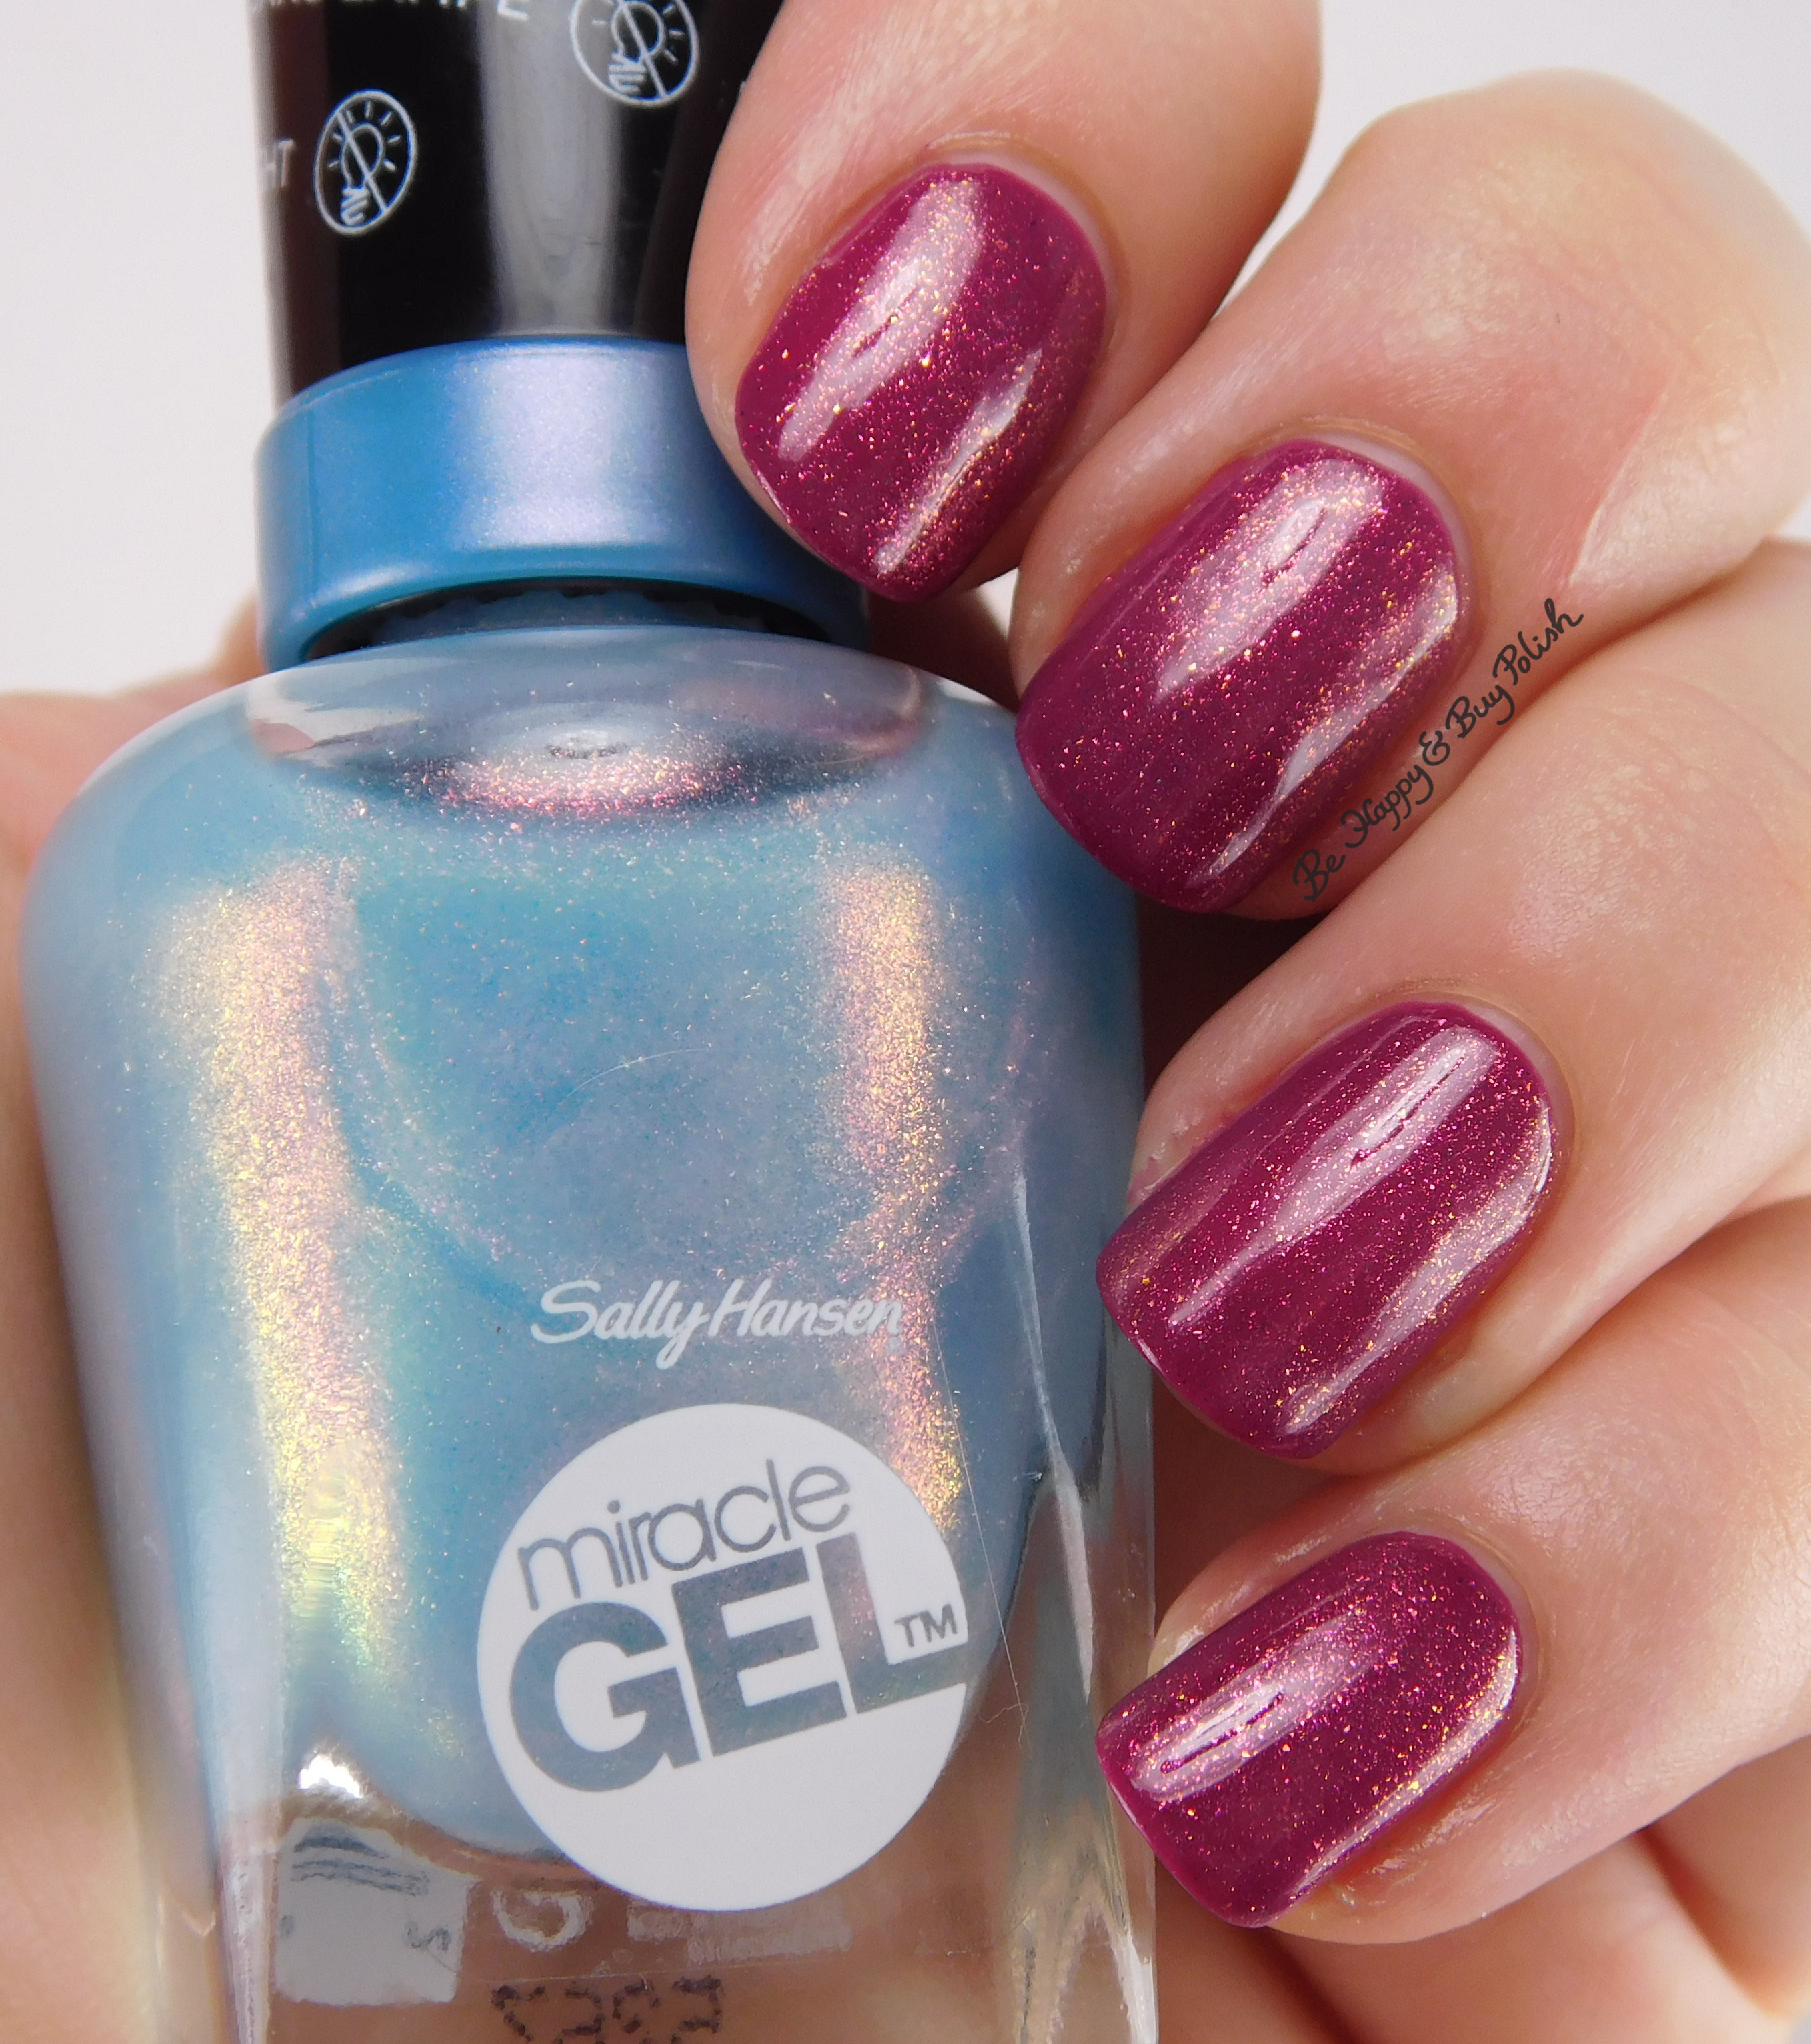 Sally Hansen Miracle Gel The Digital Overload Nail Polishes Partial Swatches Review Be